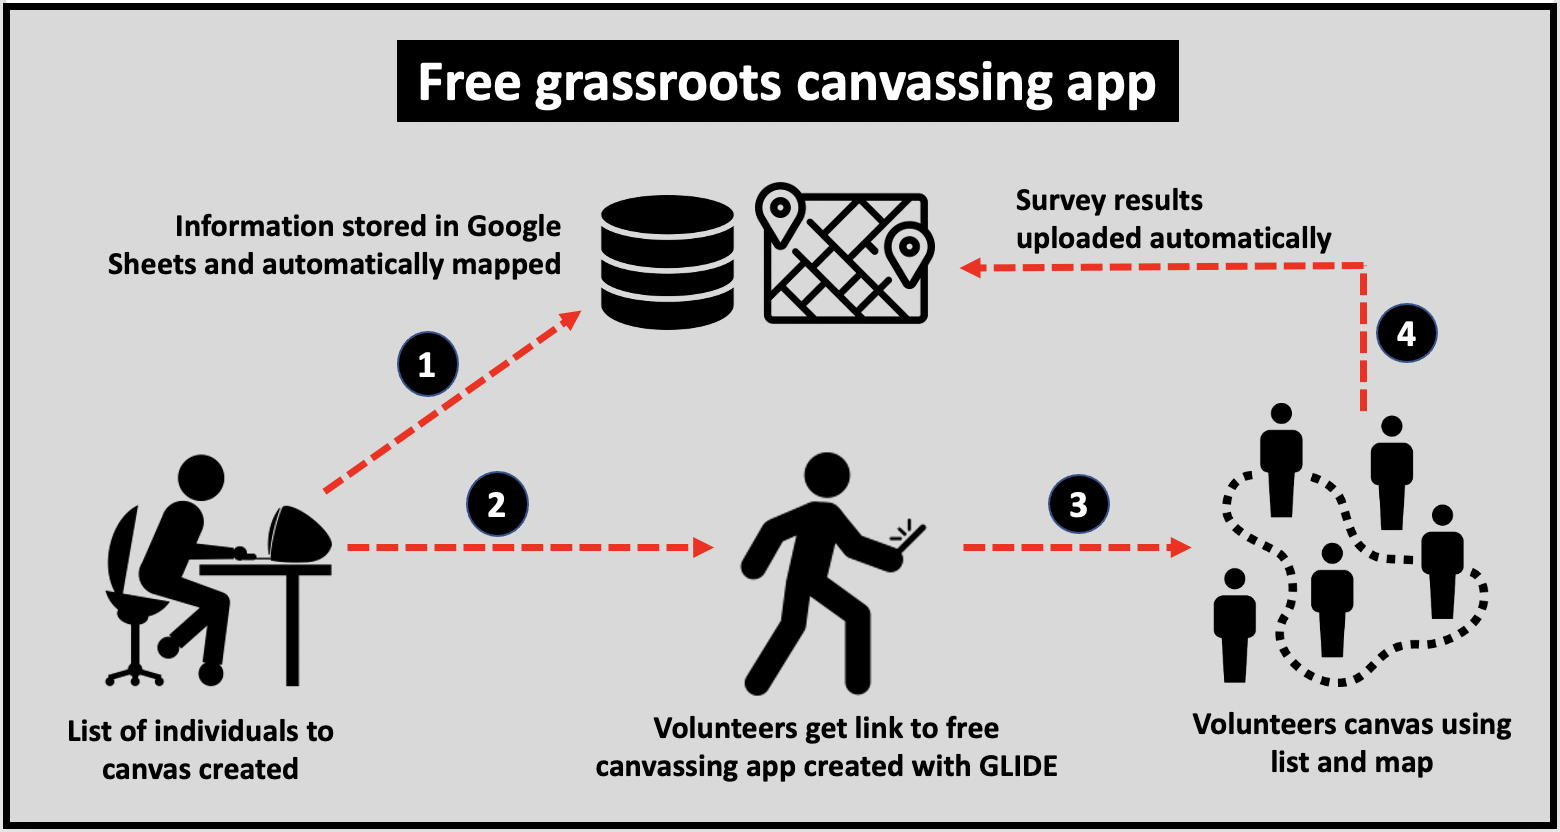 Free grassroots canvassing app built with Google Sheets and Glide Apps.